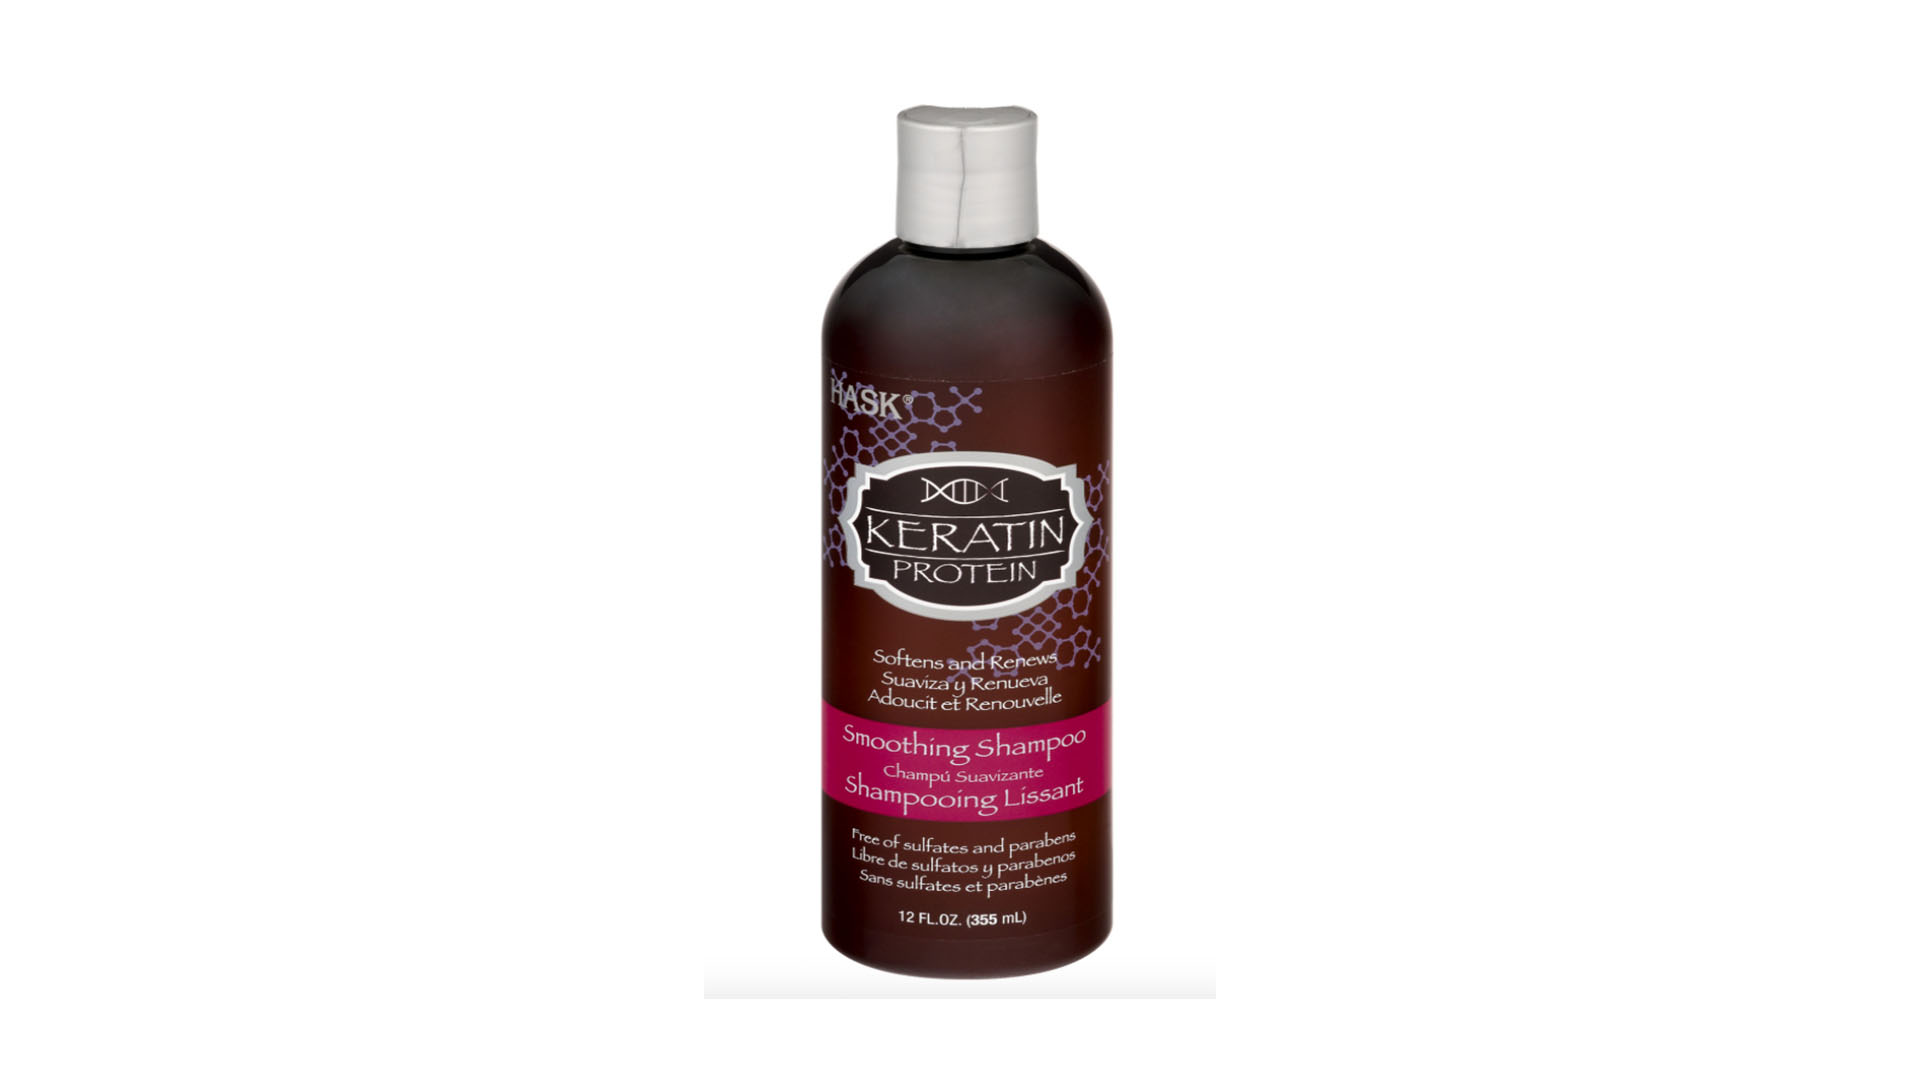 HASK Keratin Protein Softens & Renews Smoothing Shampoo